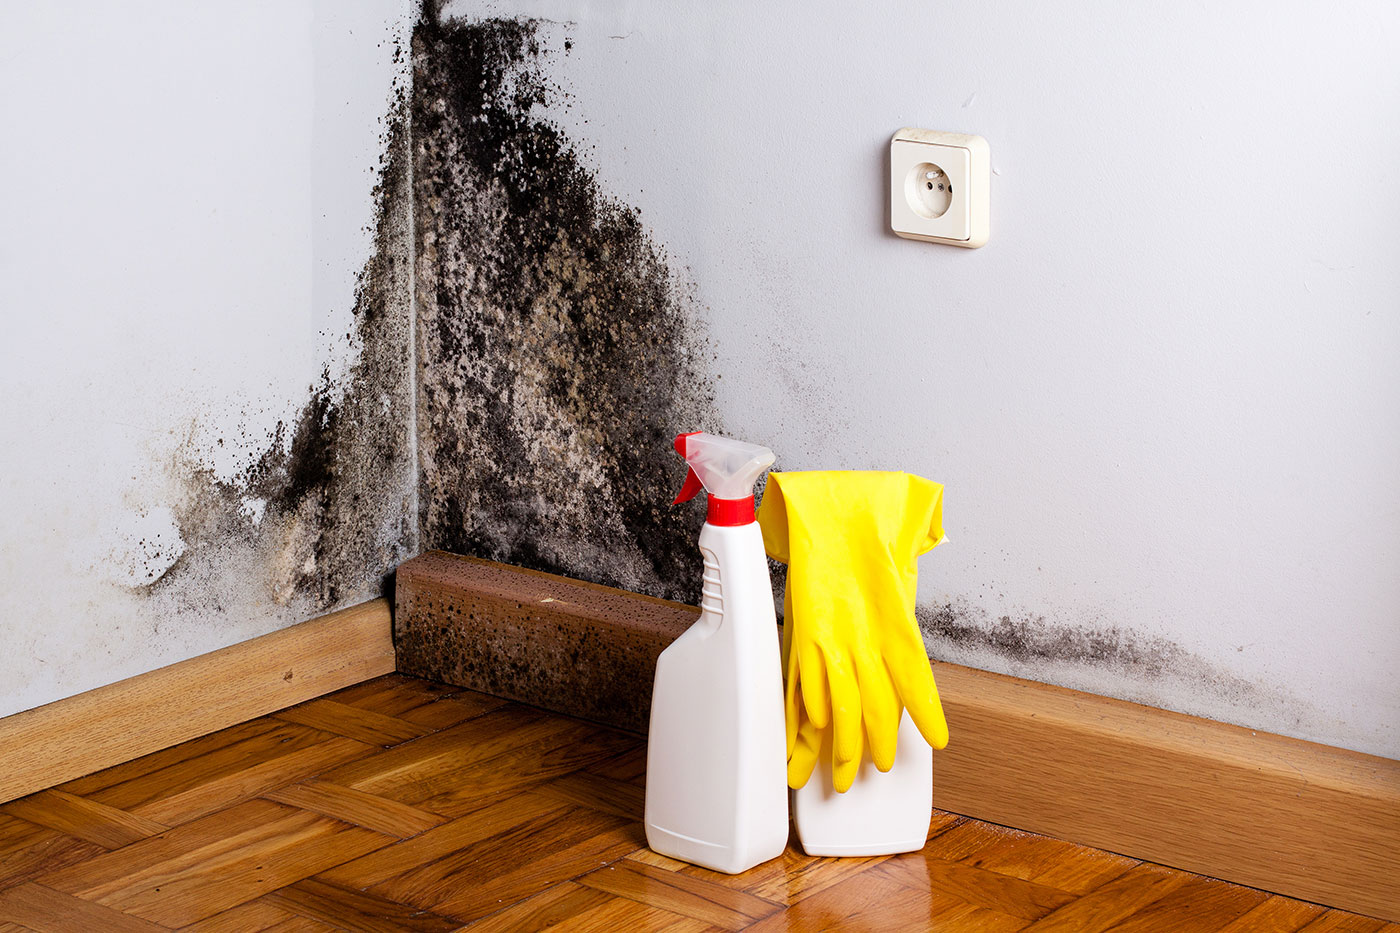 How do you clean mould off walls?